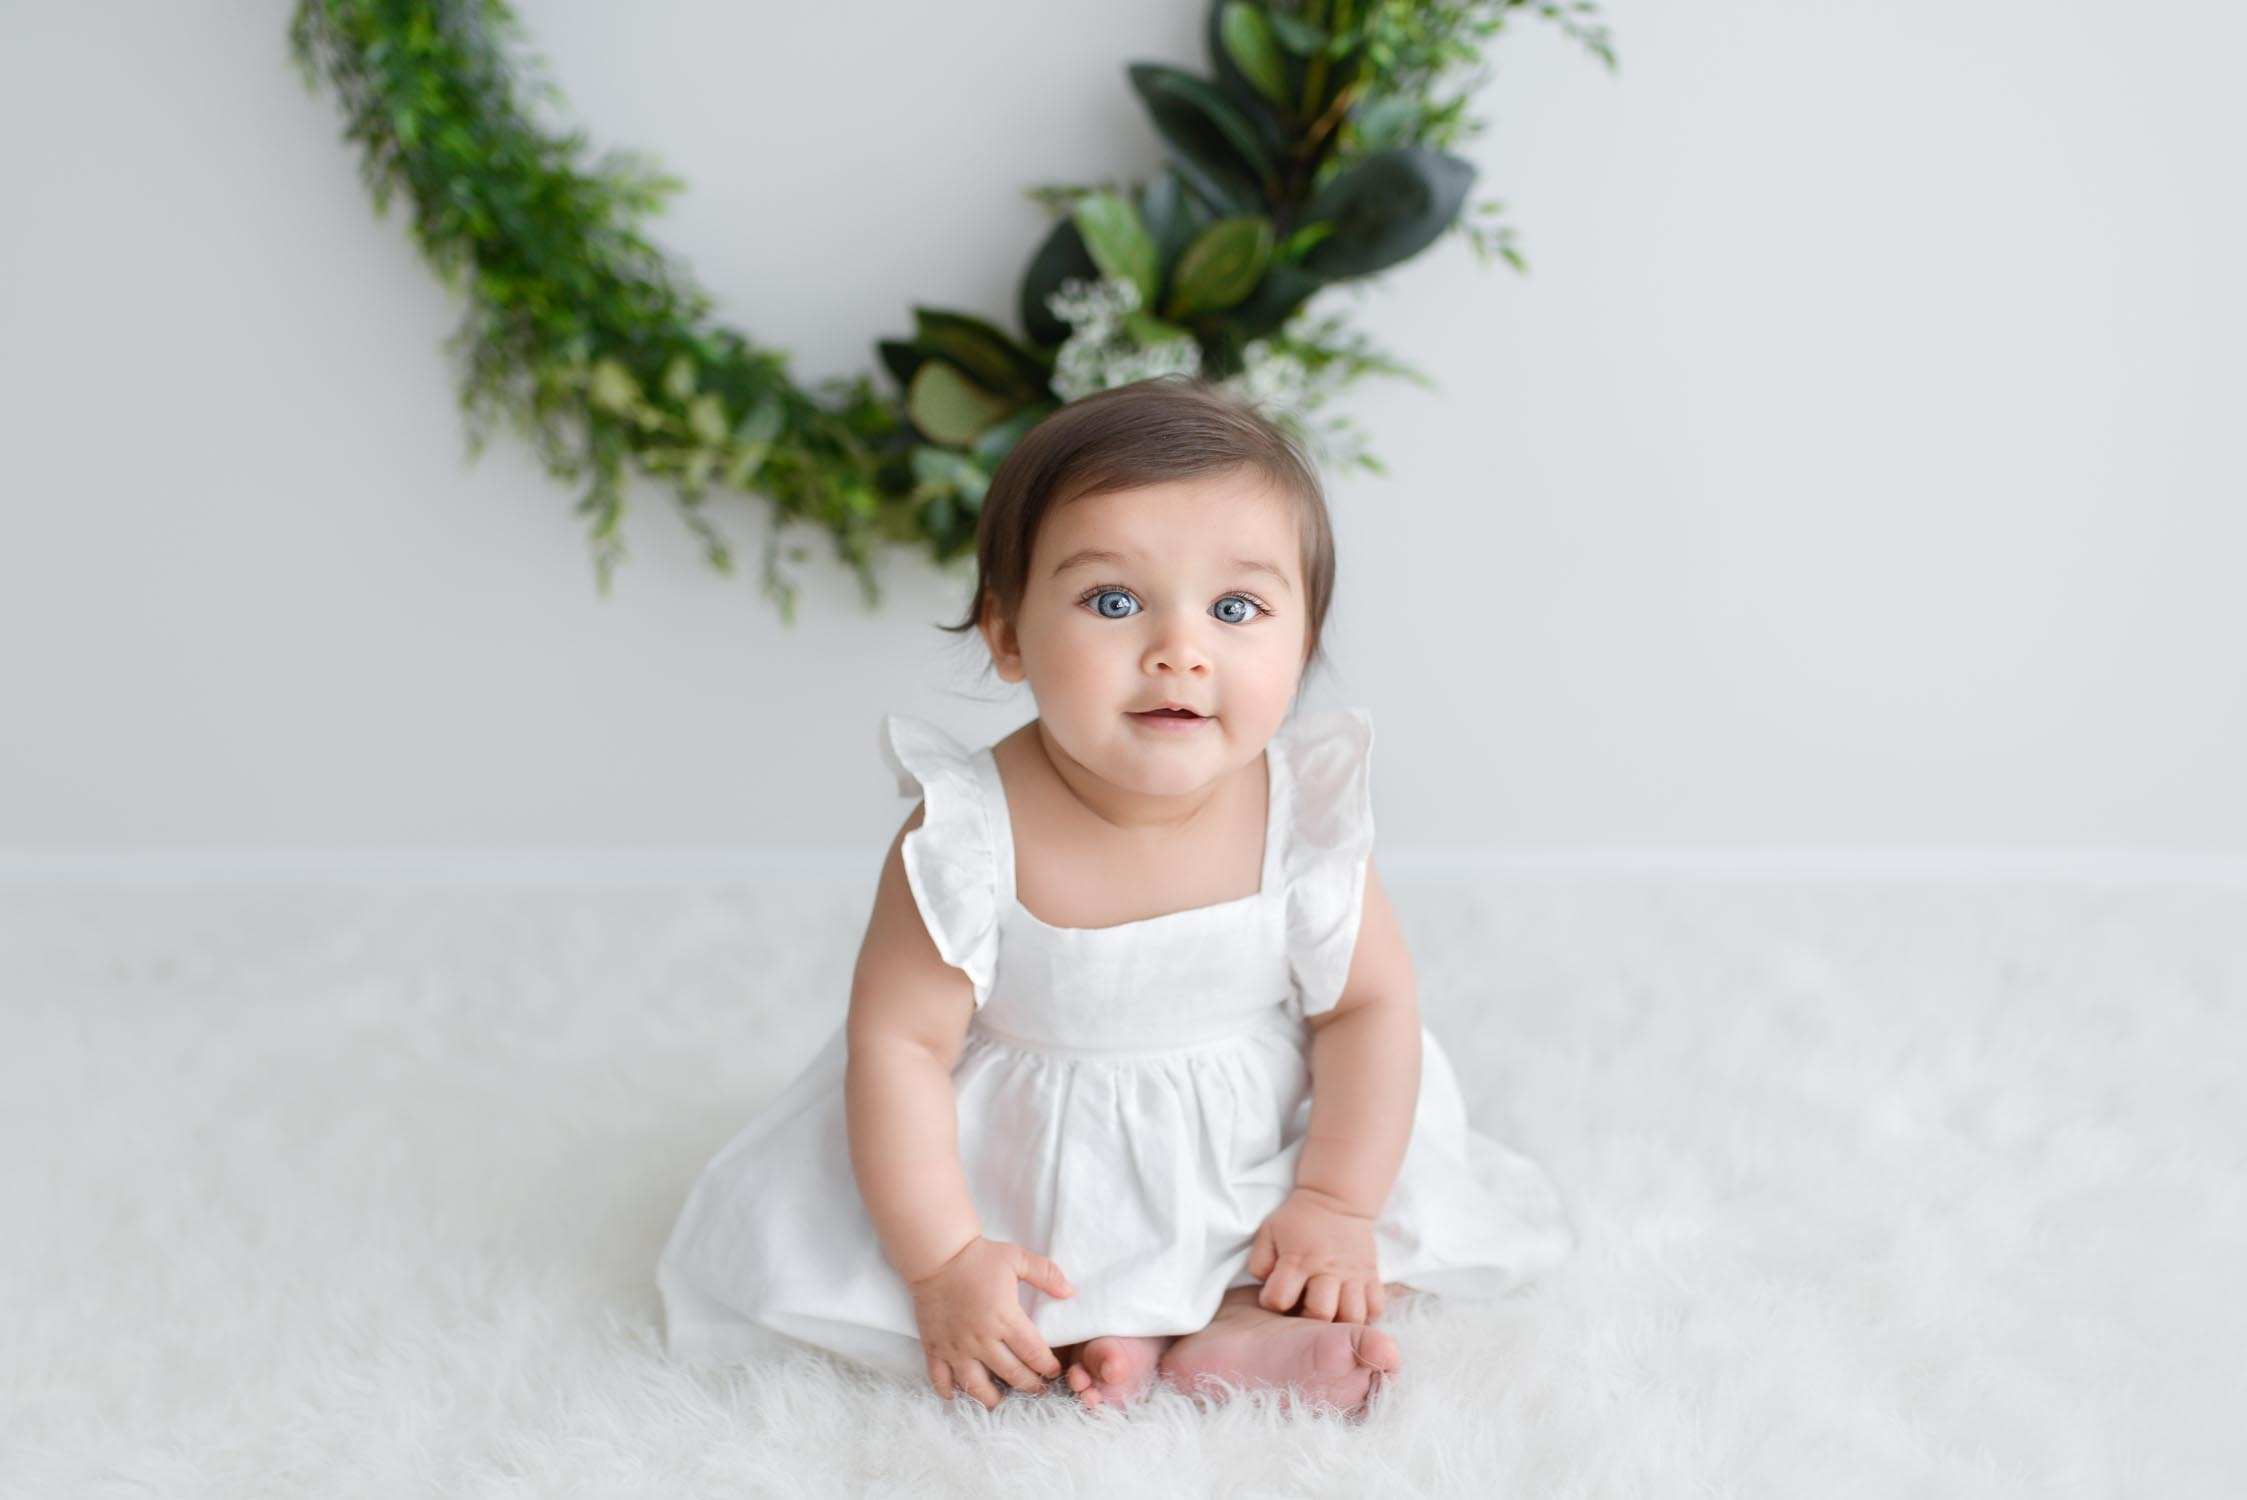 Baby in white Country Road summer dress looking at camera with christmas wreath in background